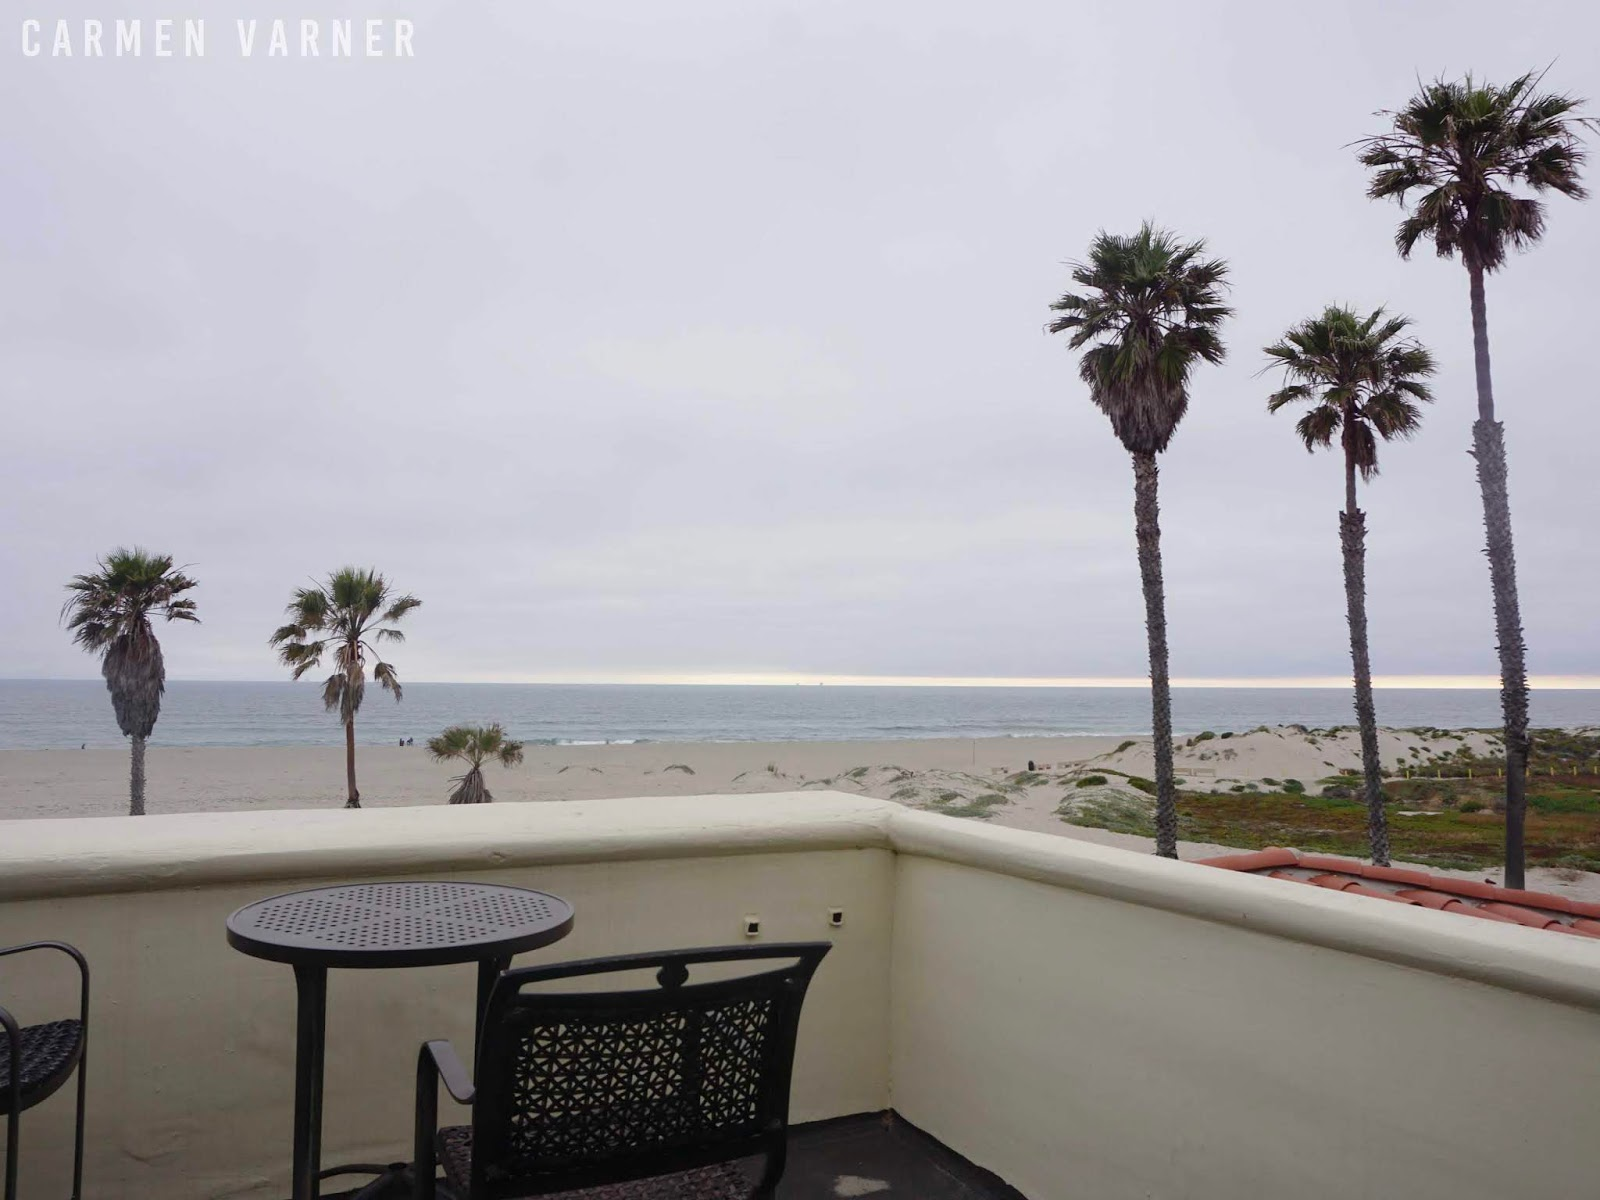 Ocean view Embassy Suites Mandalay Beach Hotel & Resort Things to do in Oxnard, California